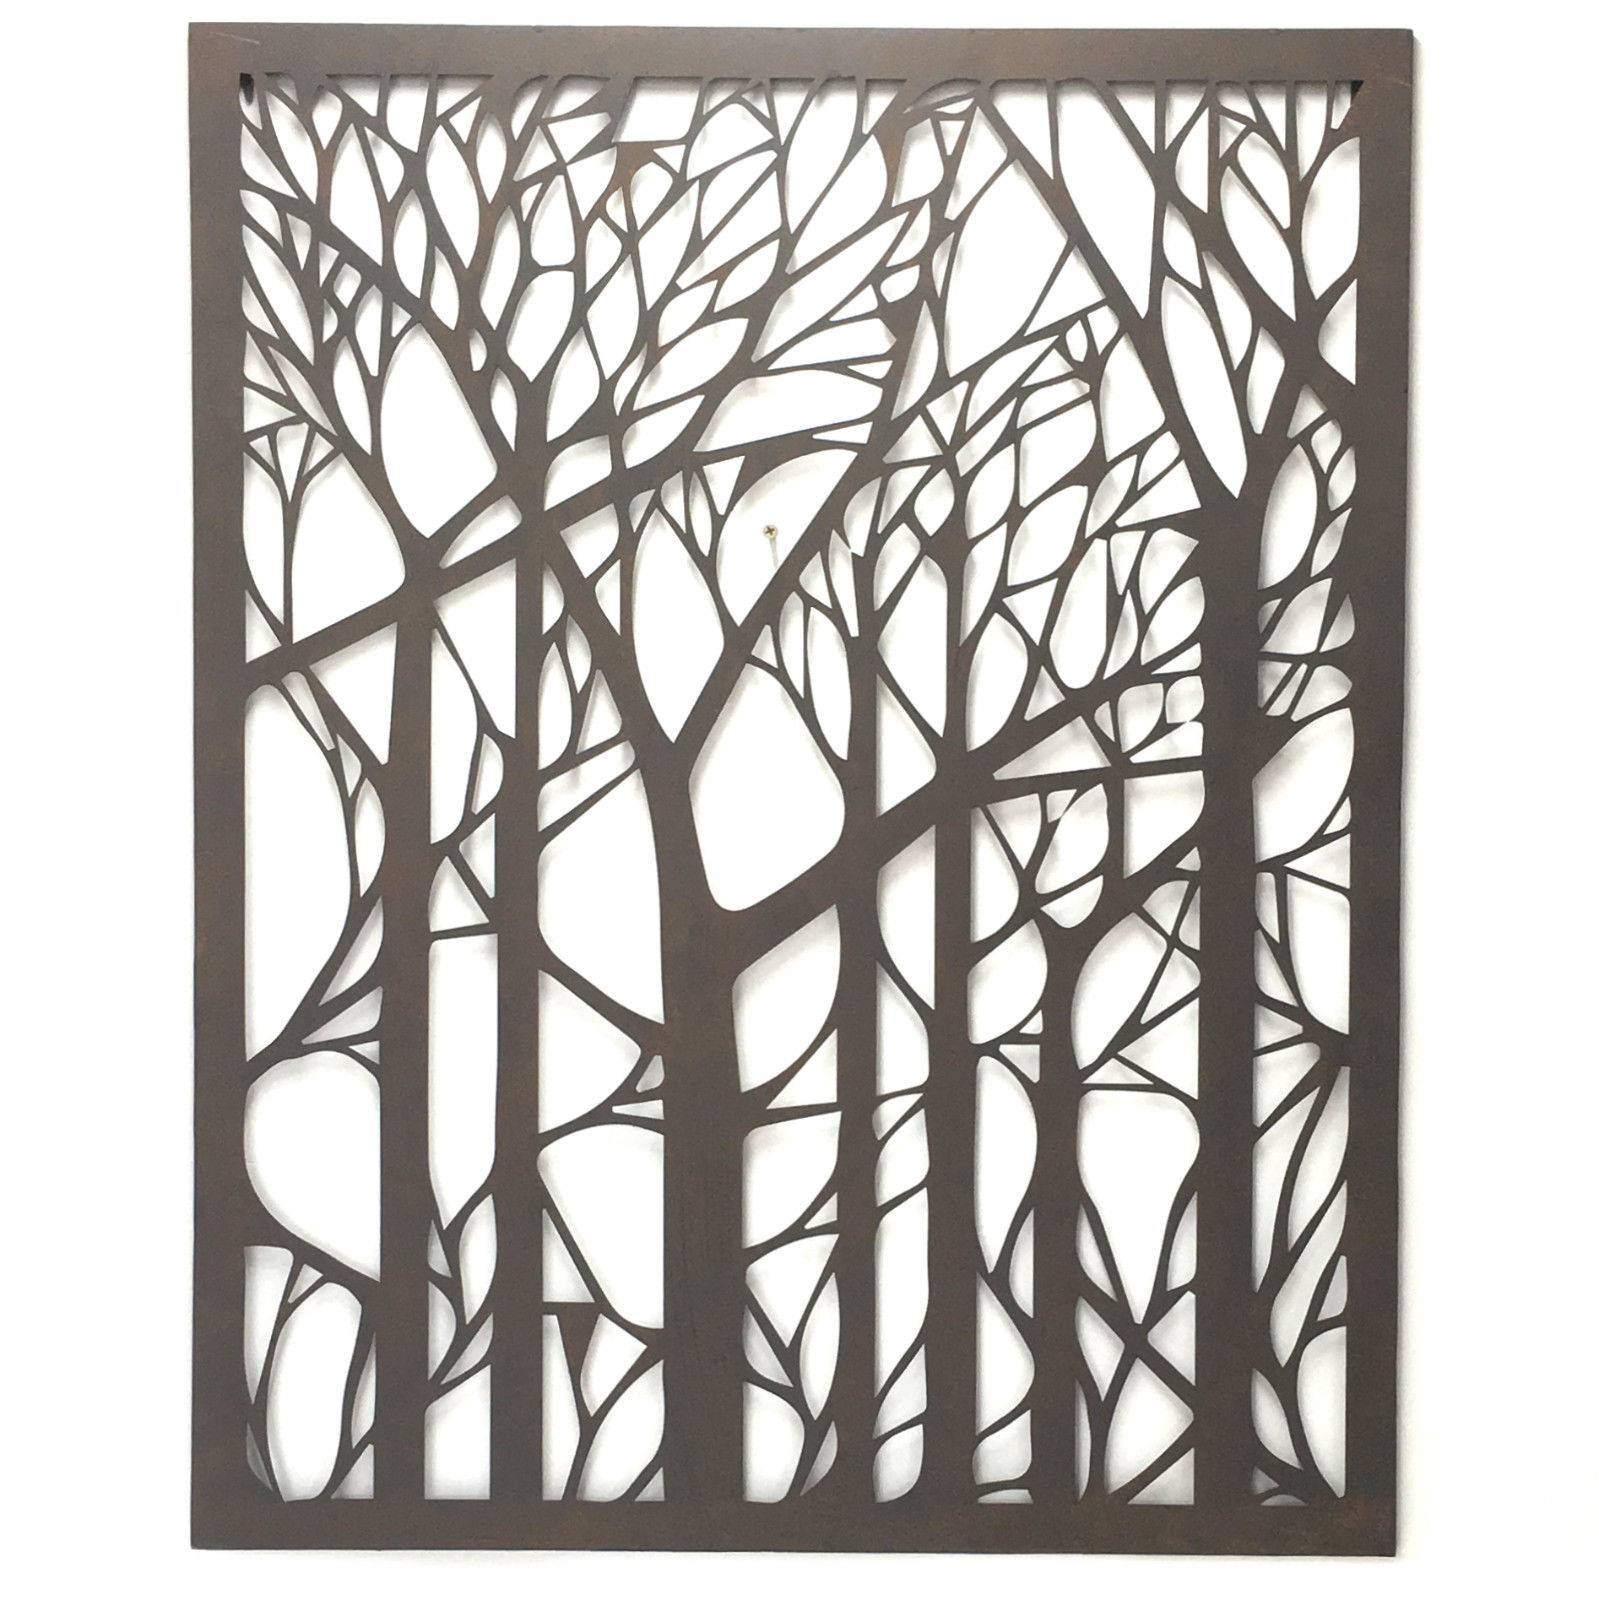 Wall Art Designs: Outdoor Wall Art Metal Tree Metal Wall Art Regarding Most Up To Date Metal Wall Art (View 29 of 30)